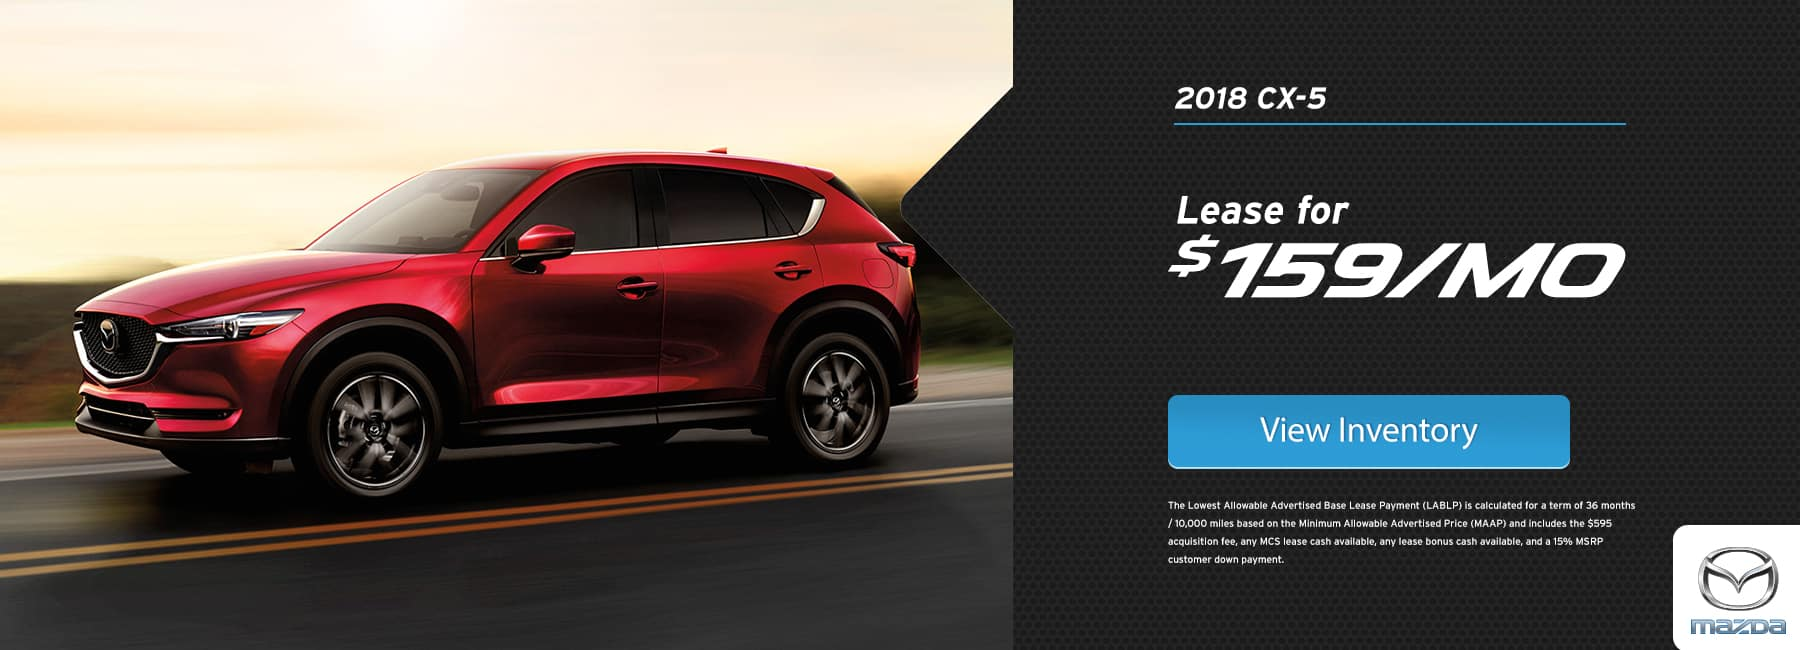 CX-5 Lease Special January